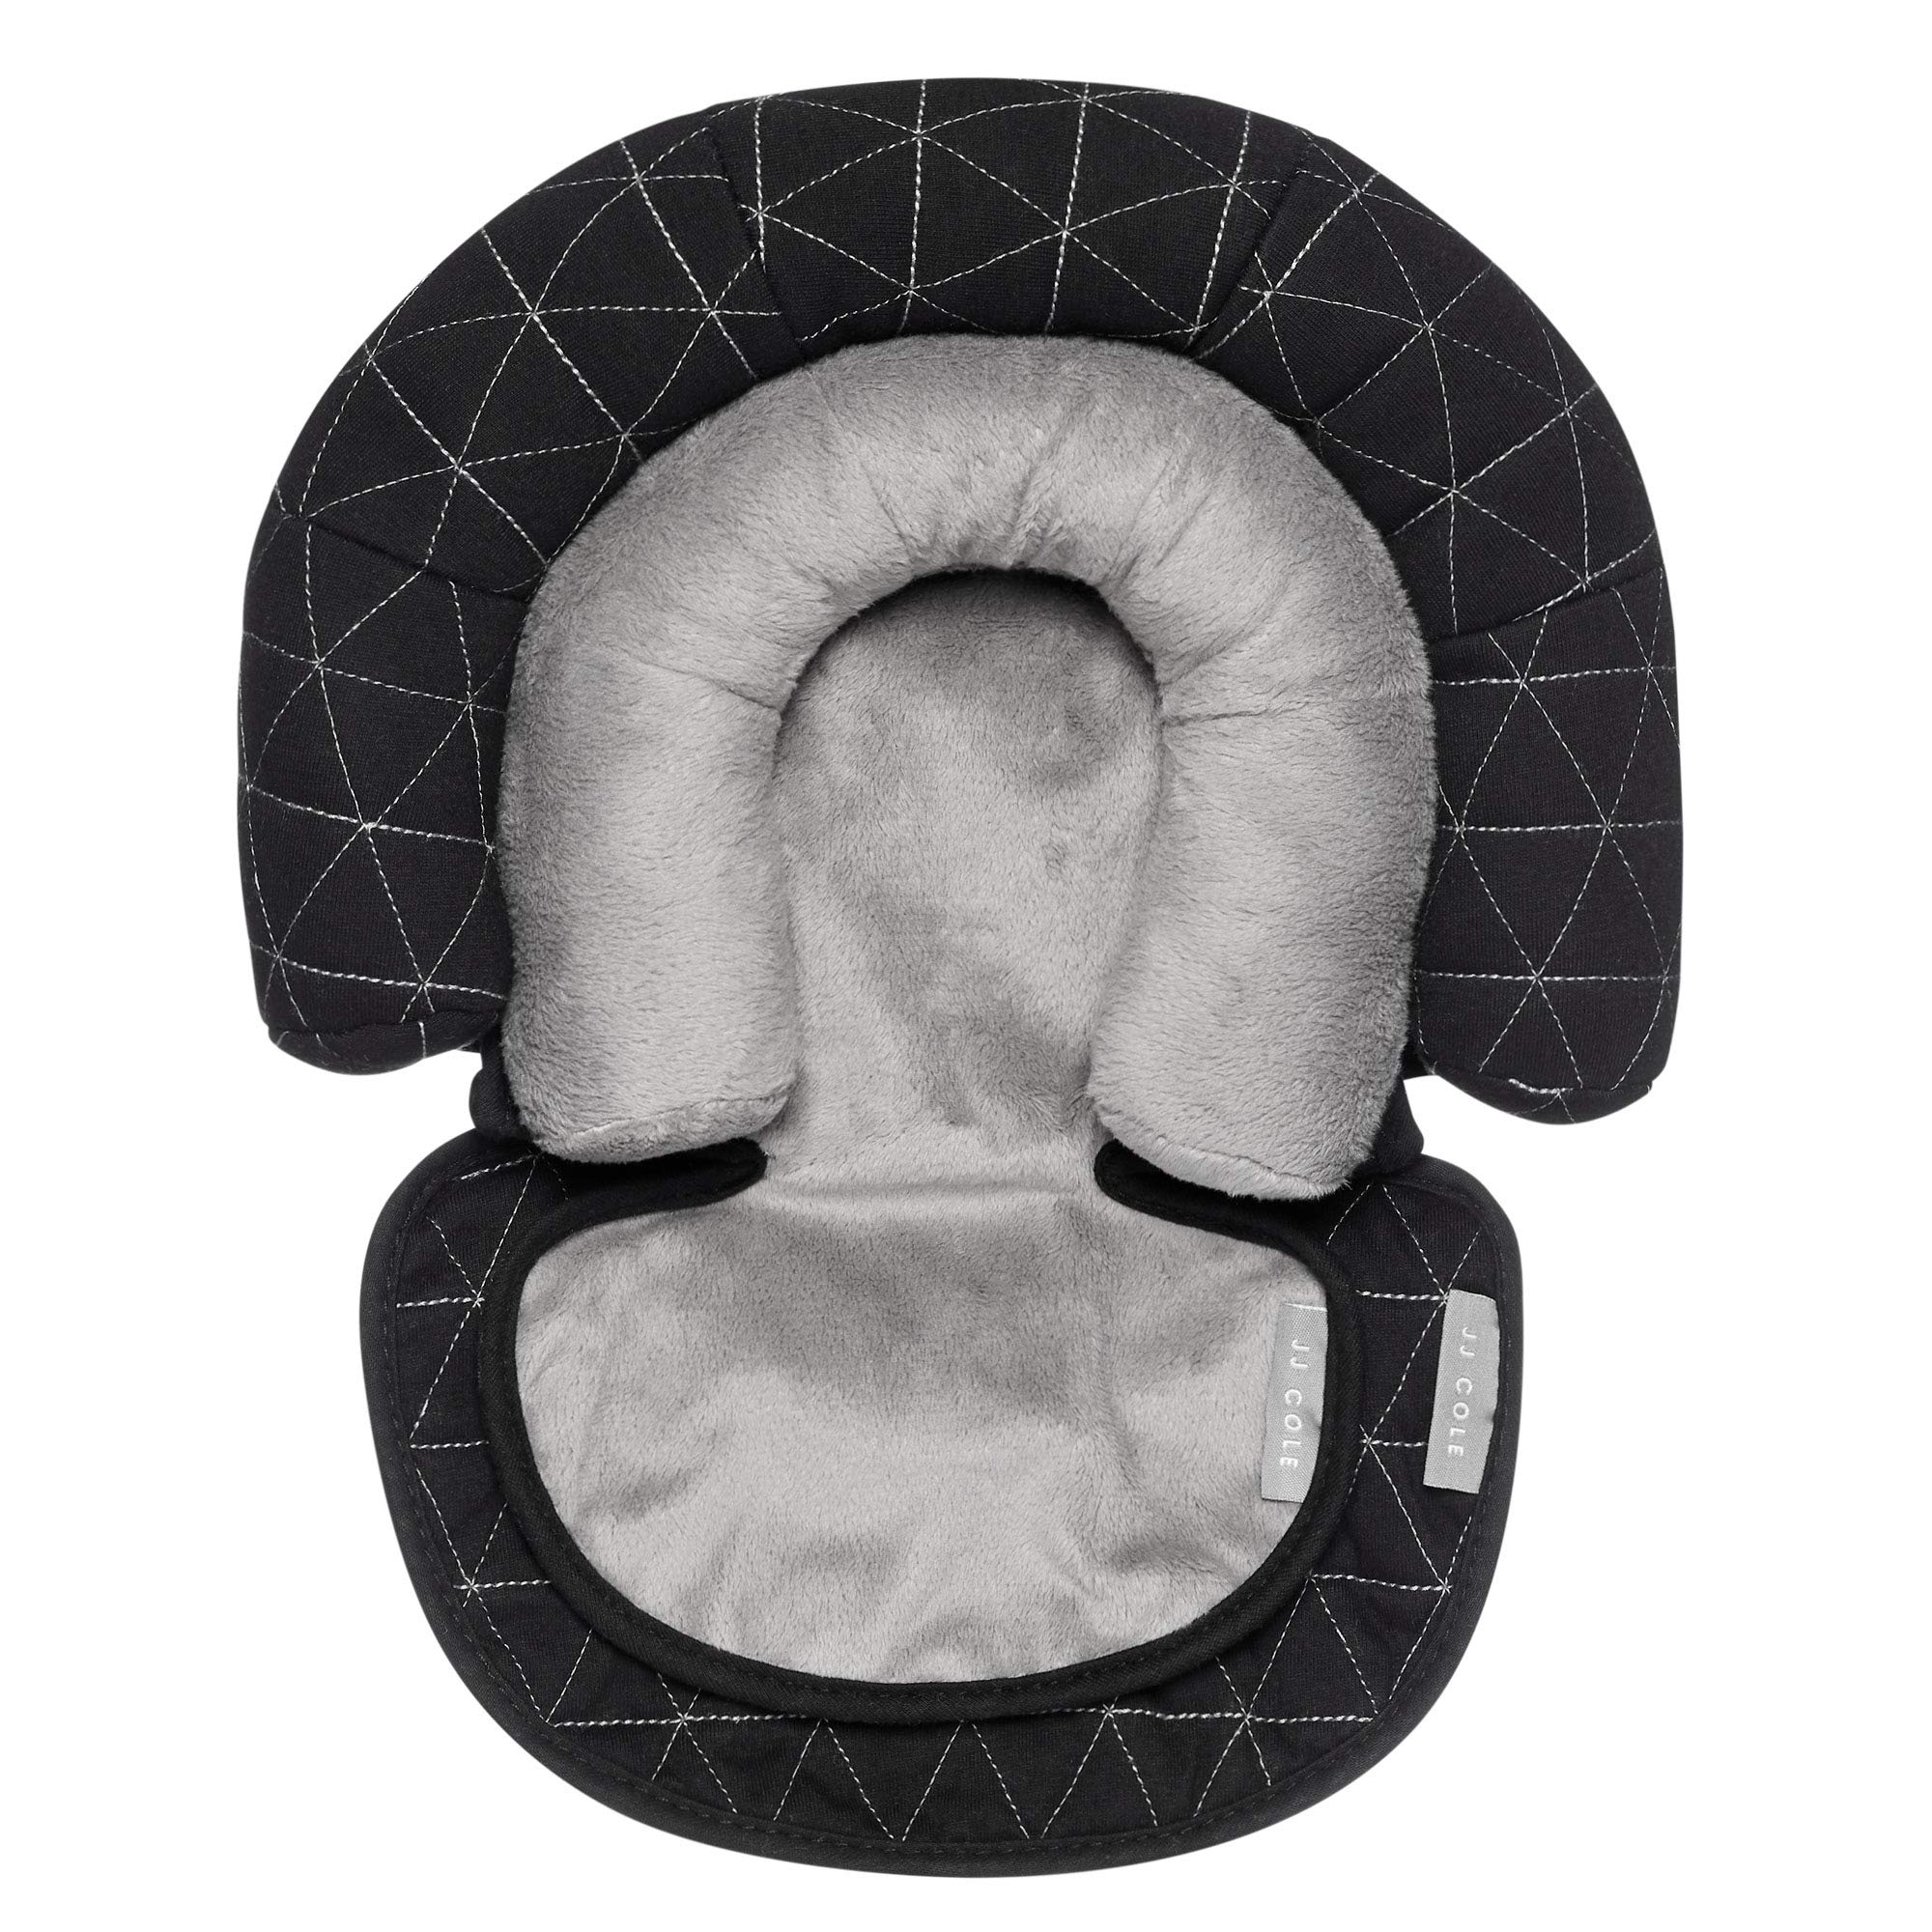 JJ Cole - Head Support, Newborn Head and Neck Support for Car Seat and Stroller, Designed to Adjust with Age, Black Tri Stitch, Birth and Up by JJ Cole (Image #1)